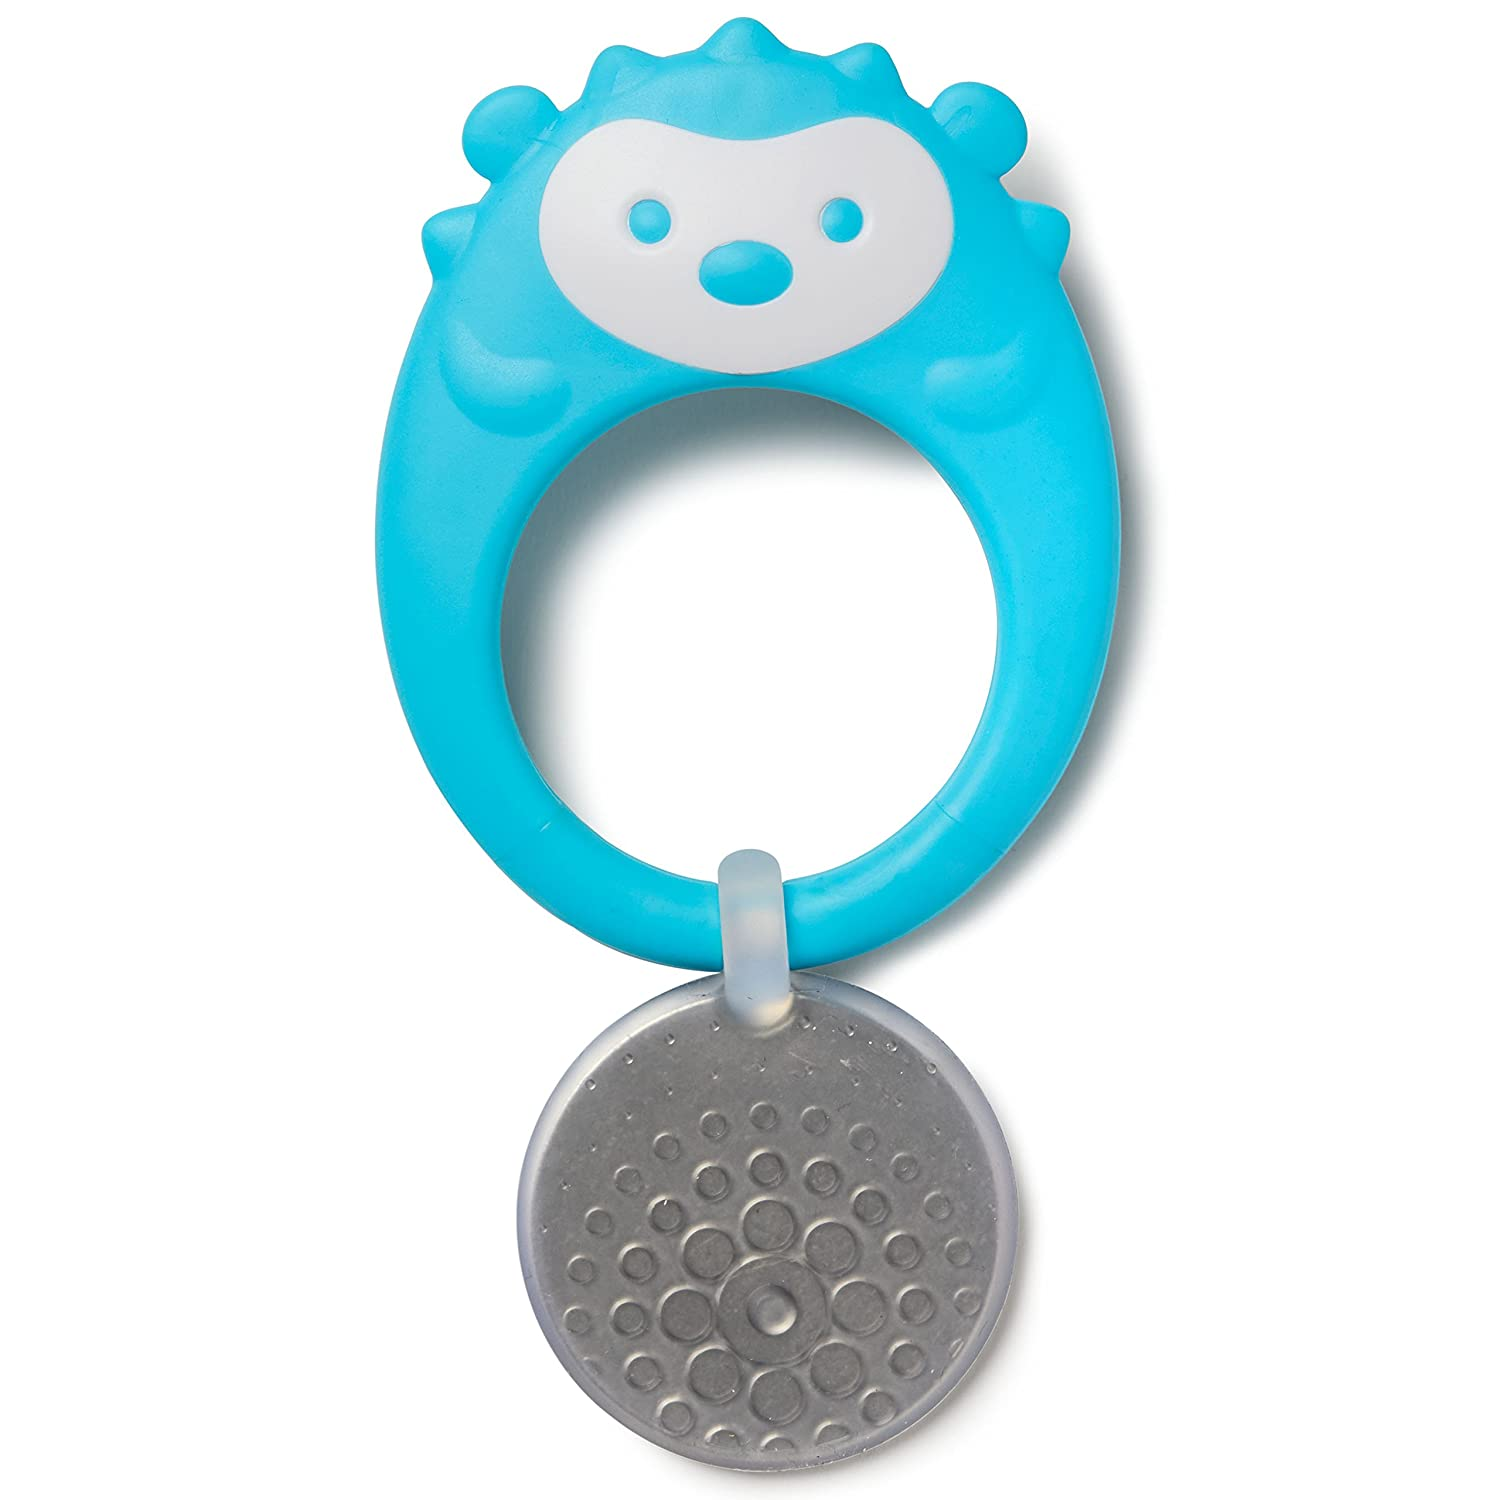 Skip Hop Baby Teether Toy with Soothing Stay Cool Technology, Hedgehog